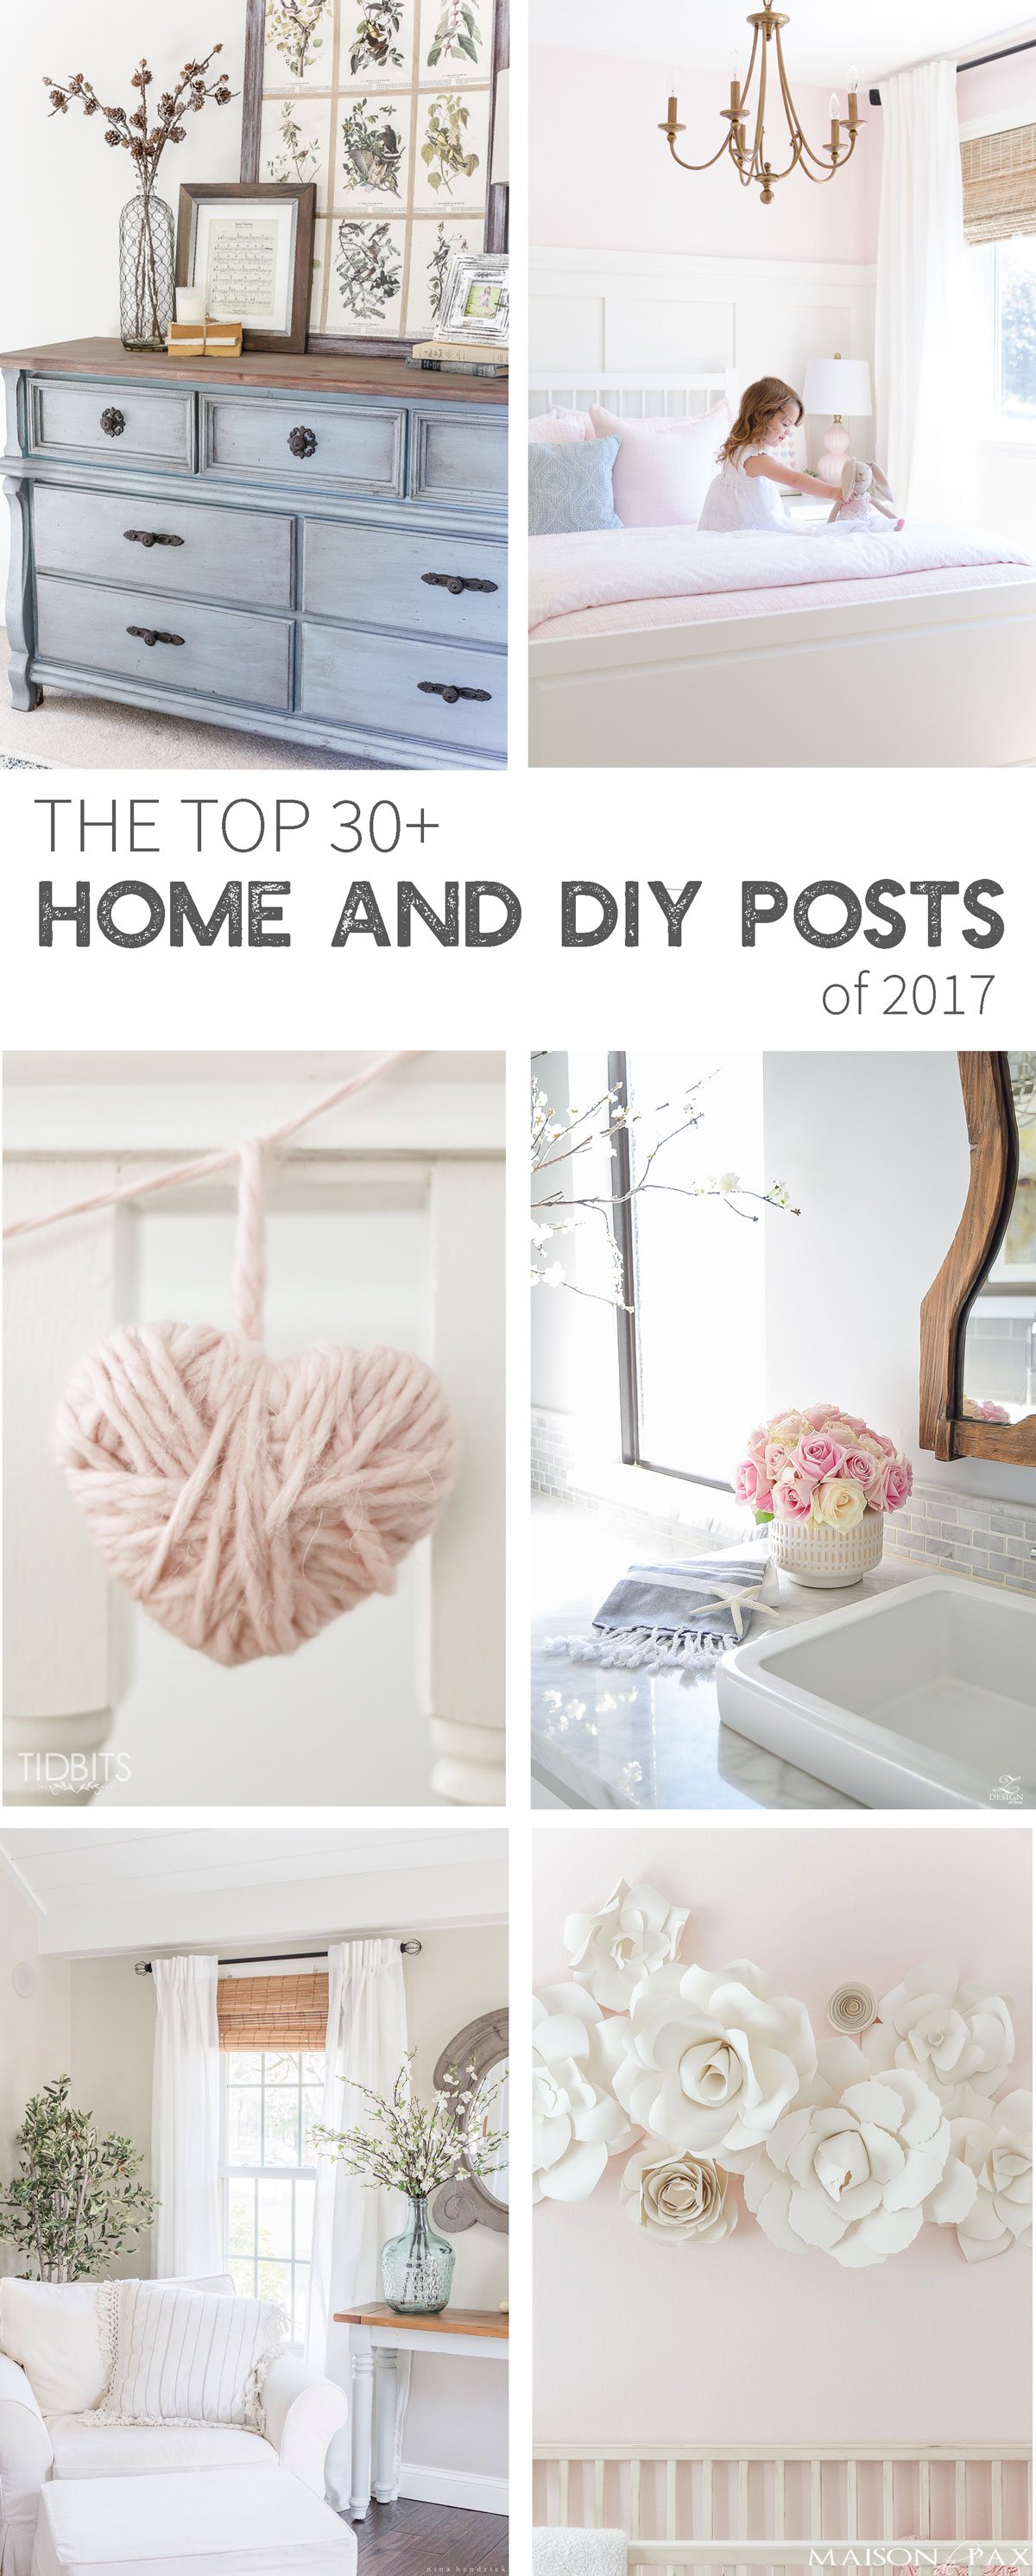 Top 30+ Home and DIY Posts of 2017